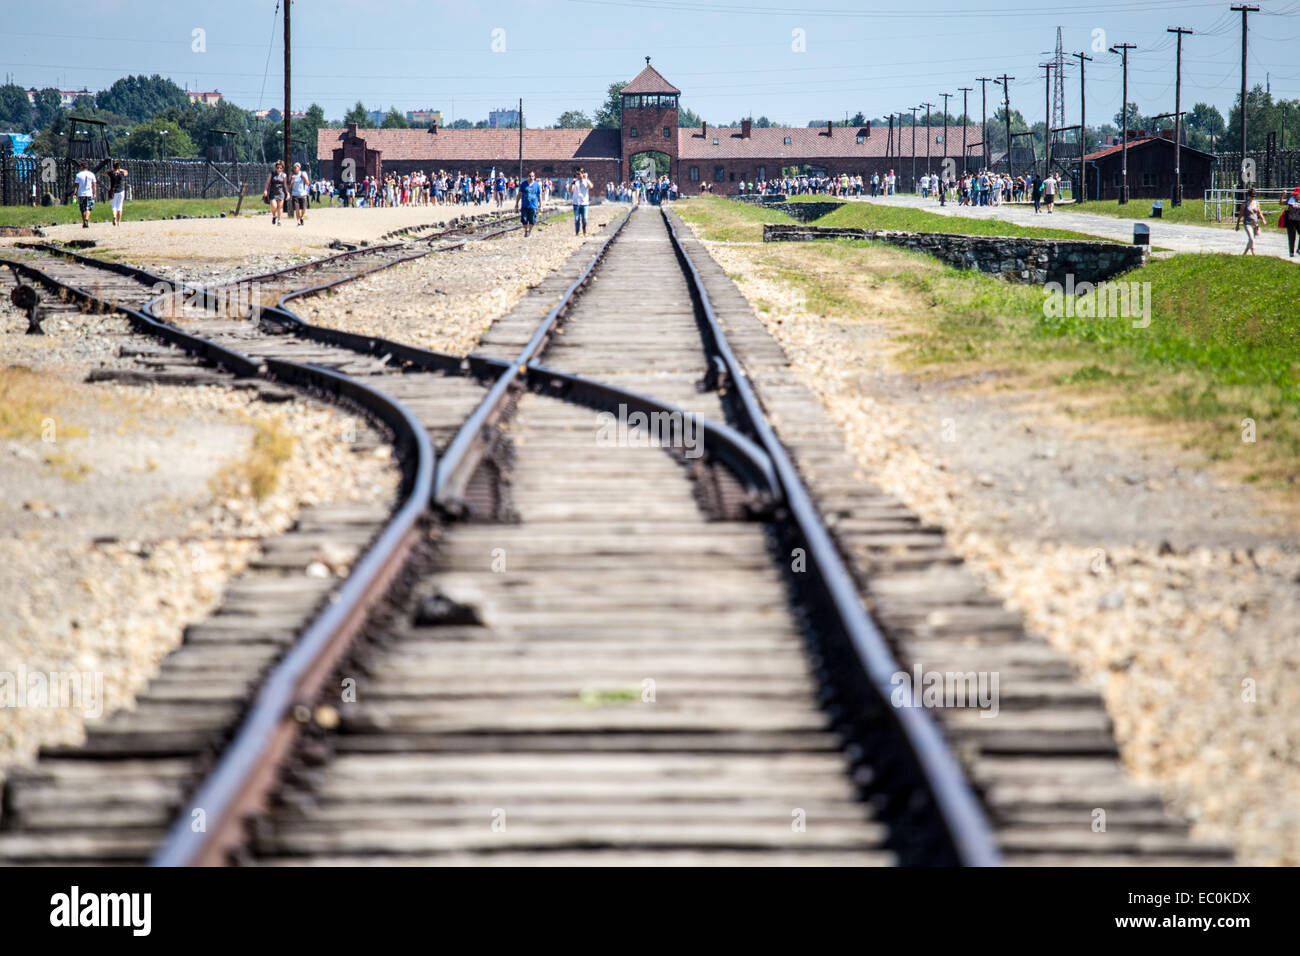 Train tracks into Auschwitz Birkenau Concentration Camp, Poland - Stock Image